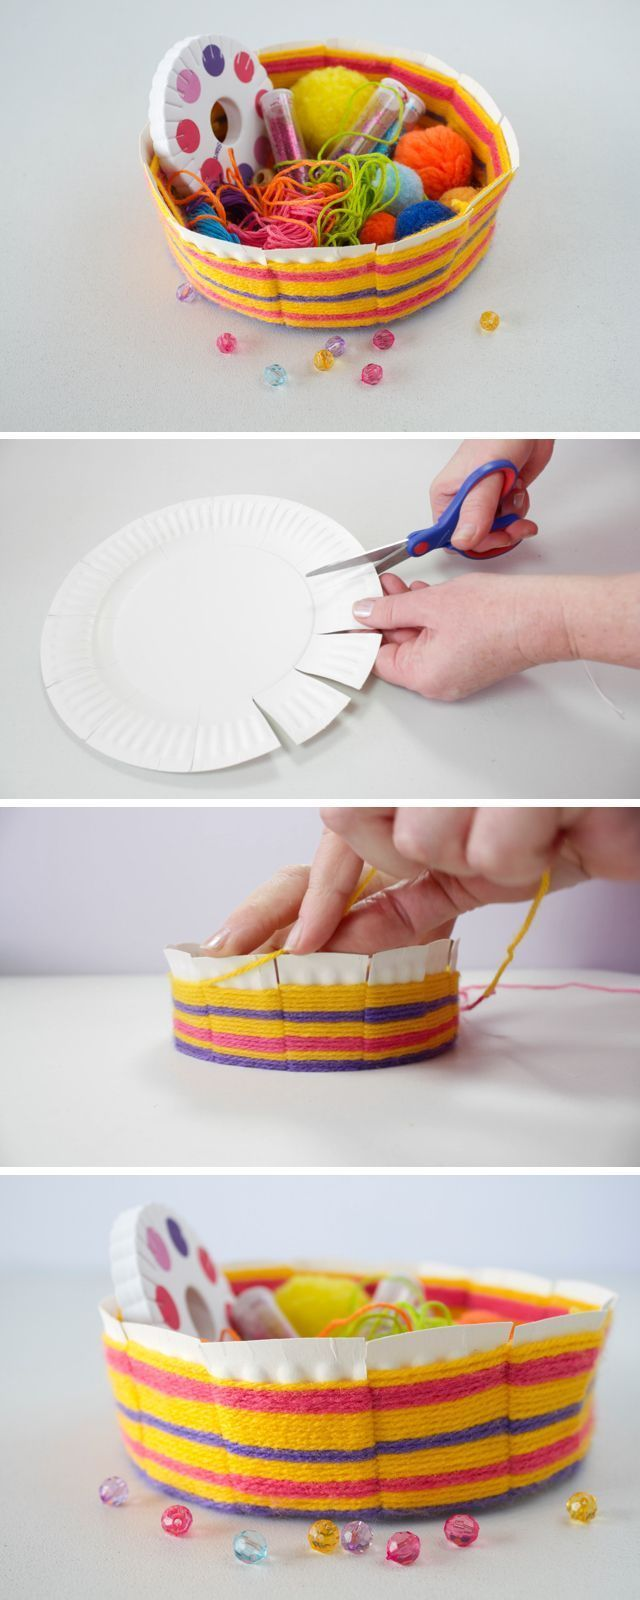 Paper Plate Weaving | Crafts for Kids #weaving Paper Plate Weaving | Crafts for Kids